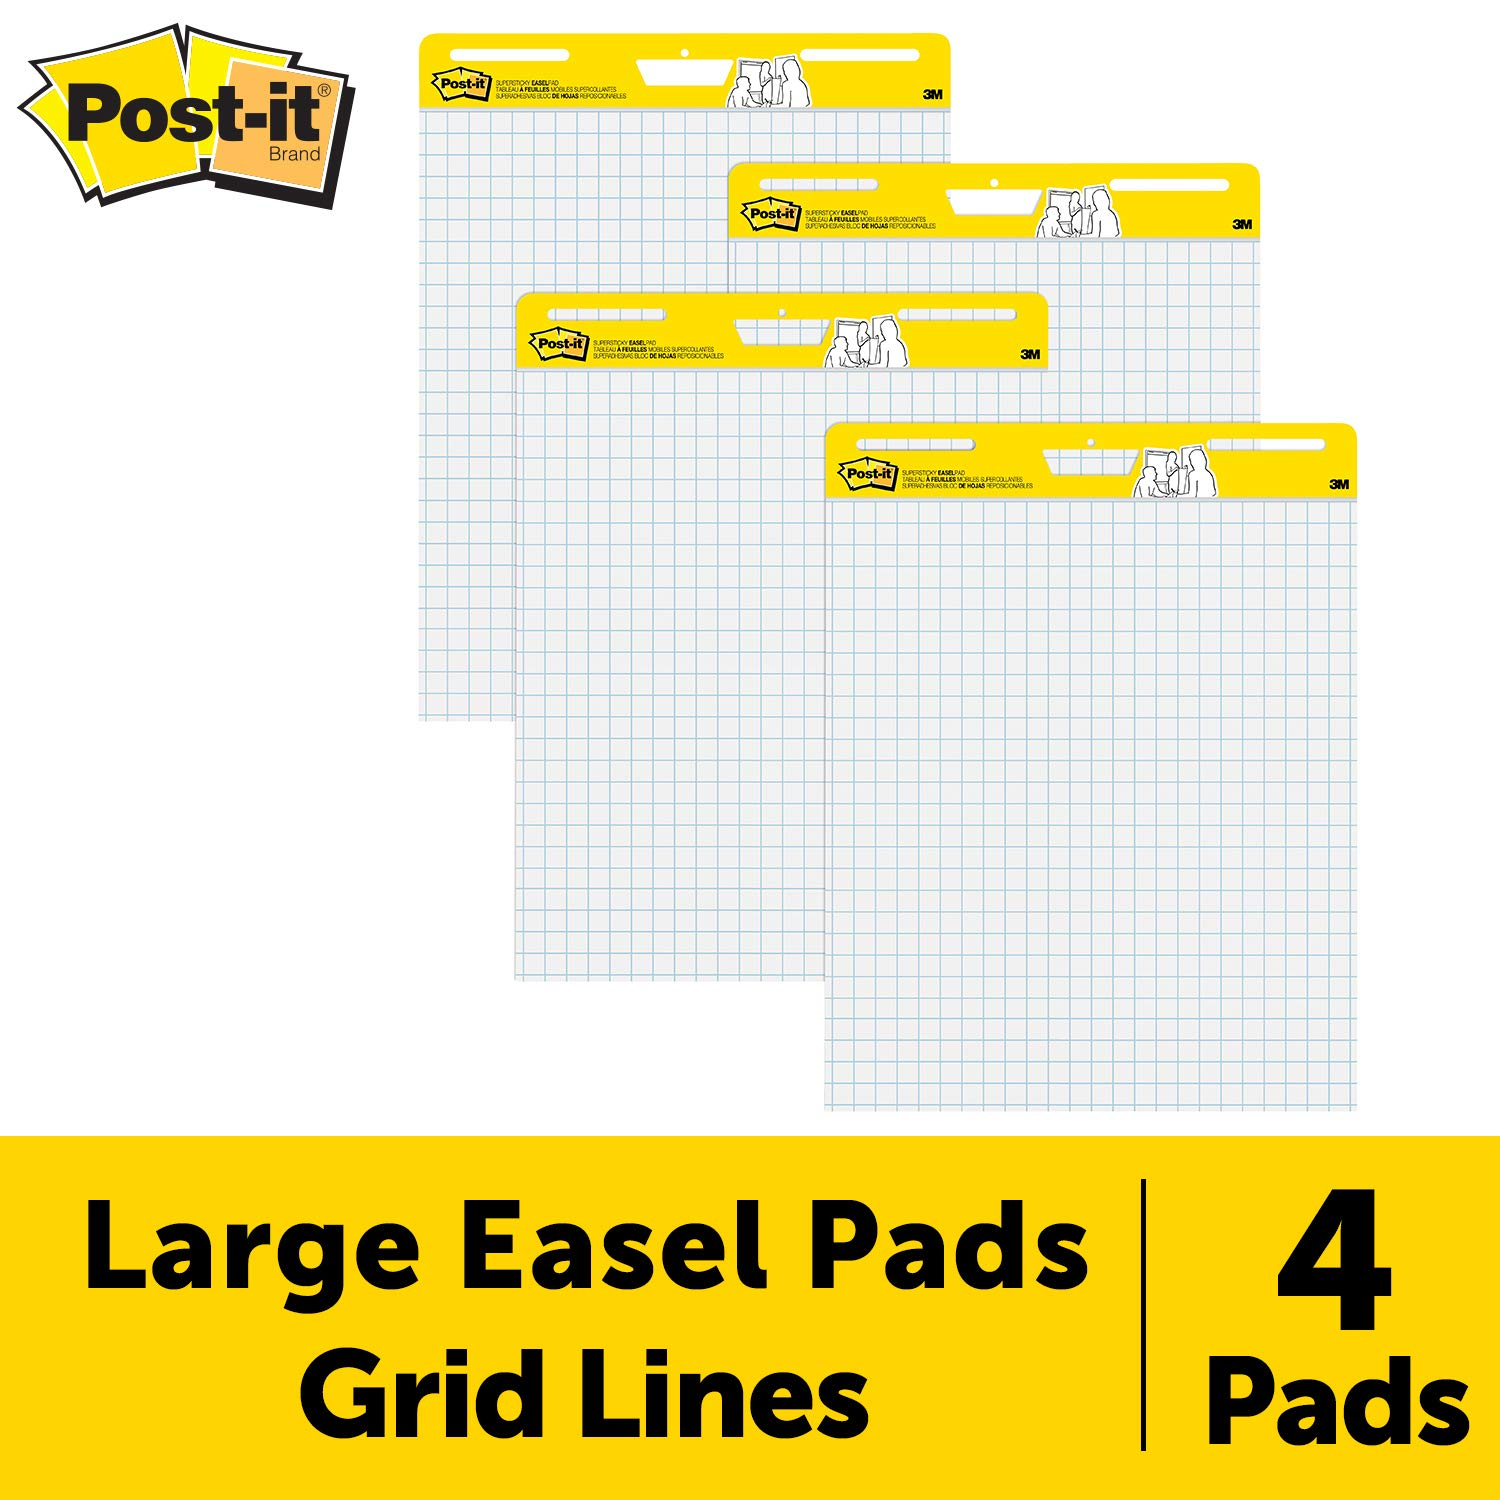 Post-it Easel Pad, 25 in x 30 in, 4 pads per pack, Blue Grid (560 VAD 4PK) by Post-it